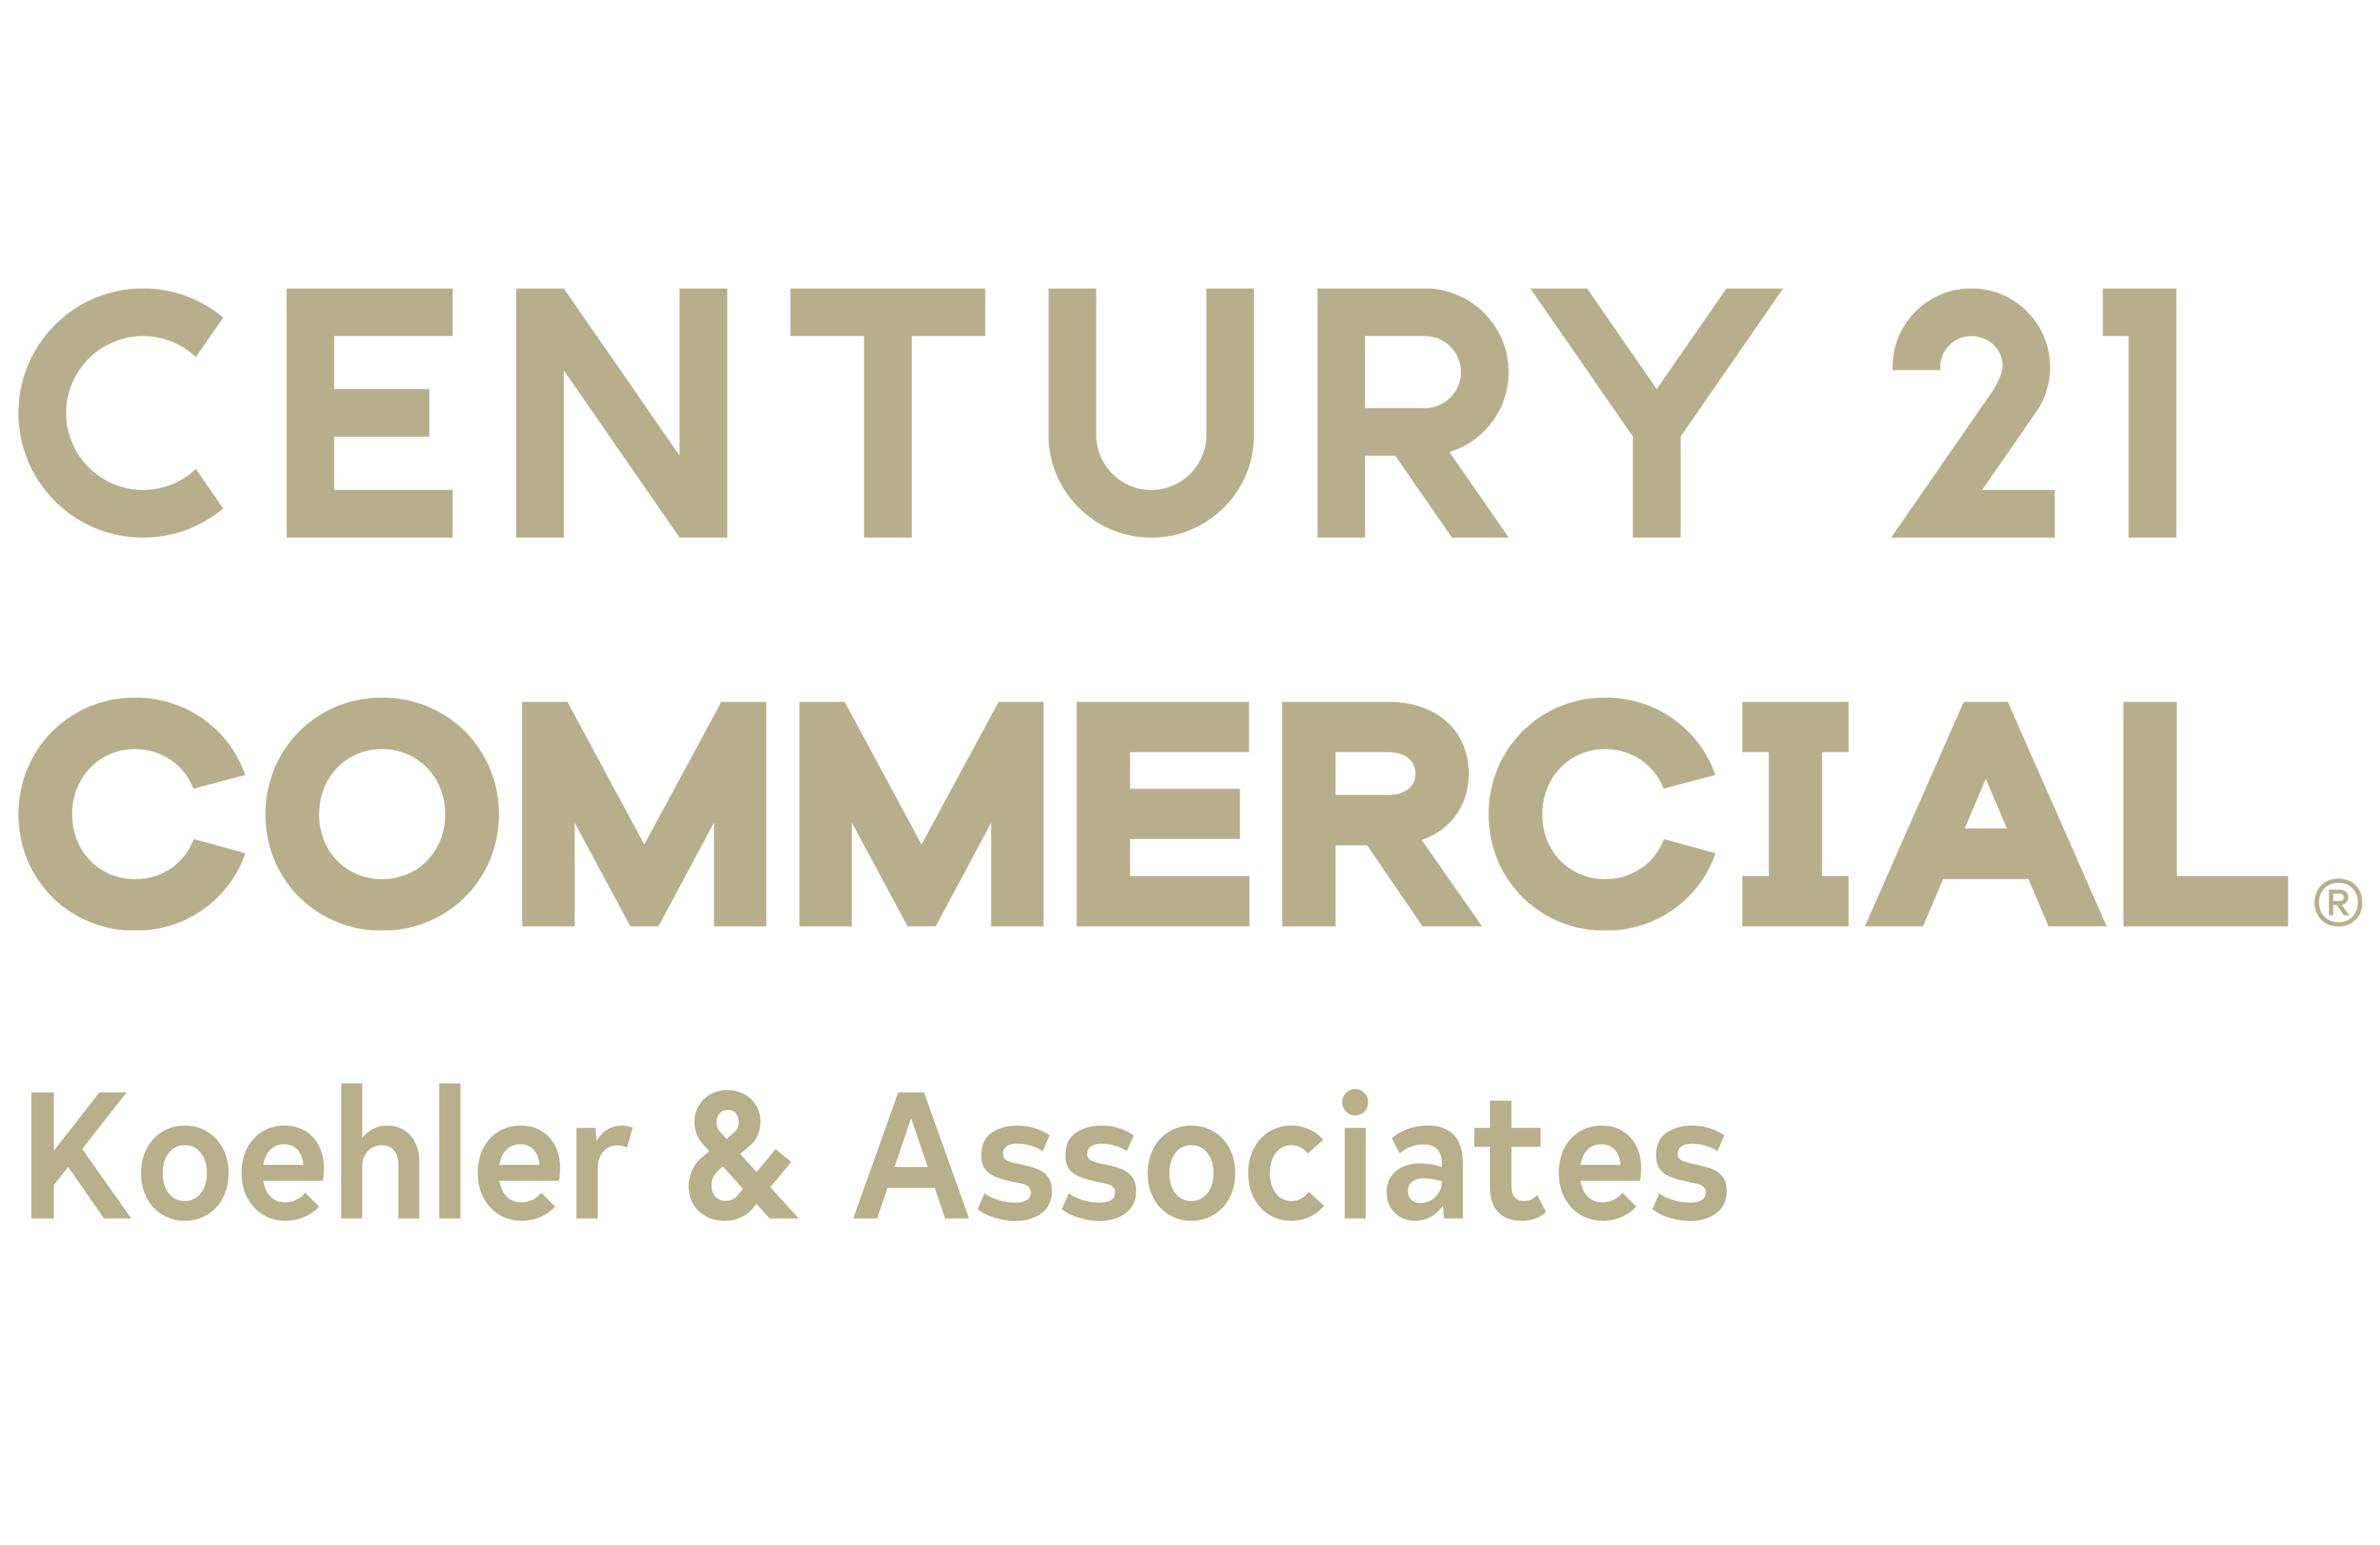 James C. Koehler II of CENTURY 21 Koehler & Associates logo